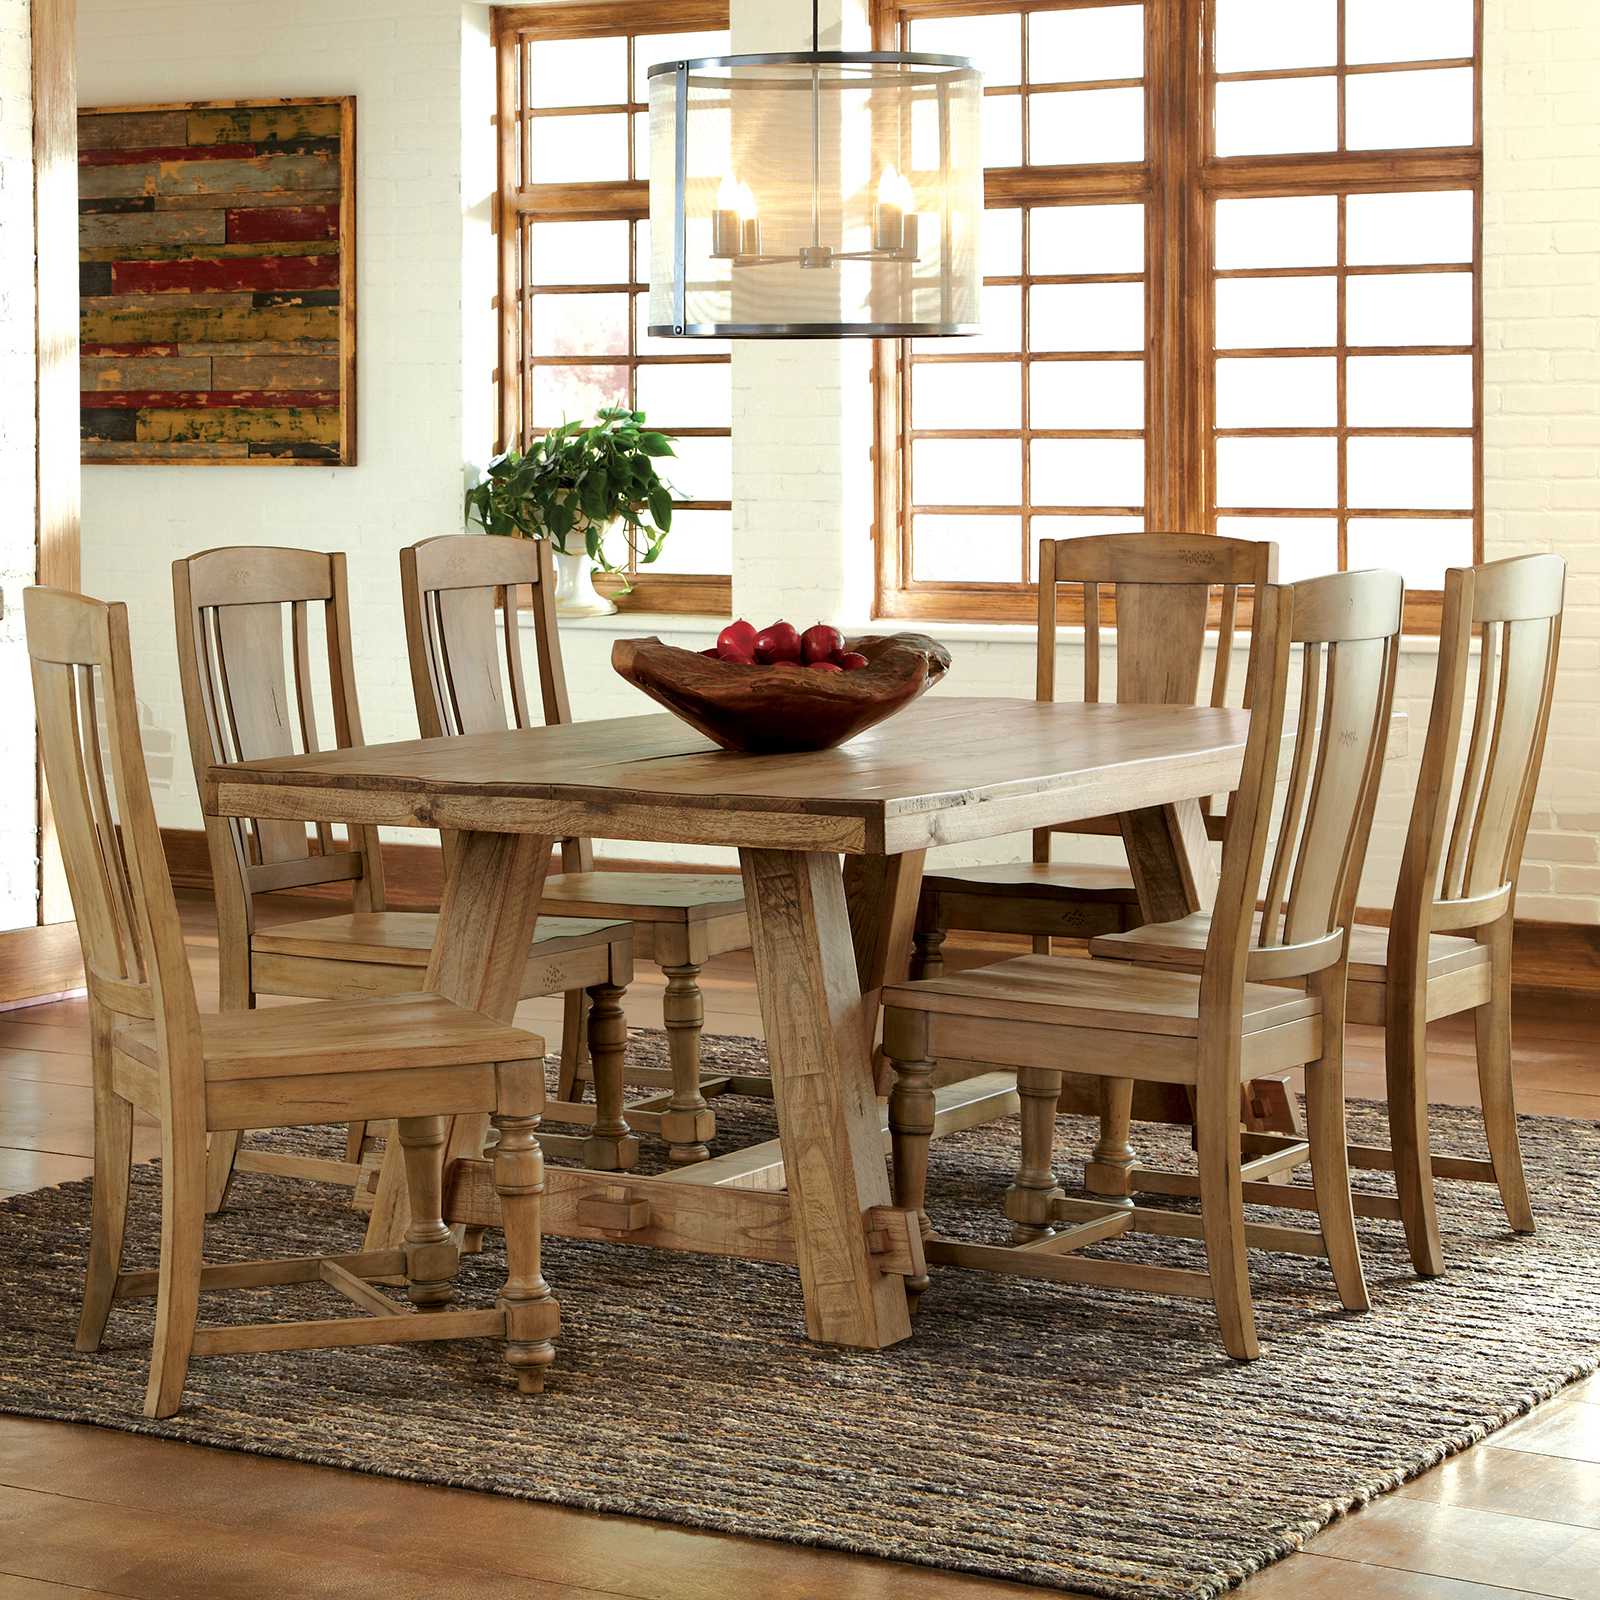 Ridgedale 7 Piece Dining Table Set with Splat Back Chairs  : masterRVS2356 from www.hayneedle.com size 1600 x 1600 jpeg 605kB